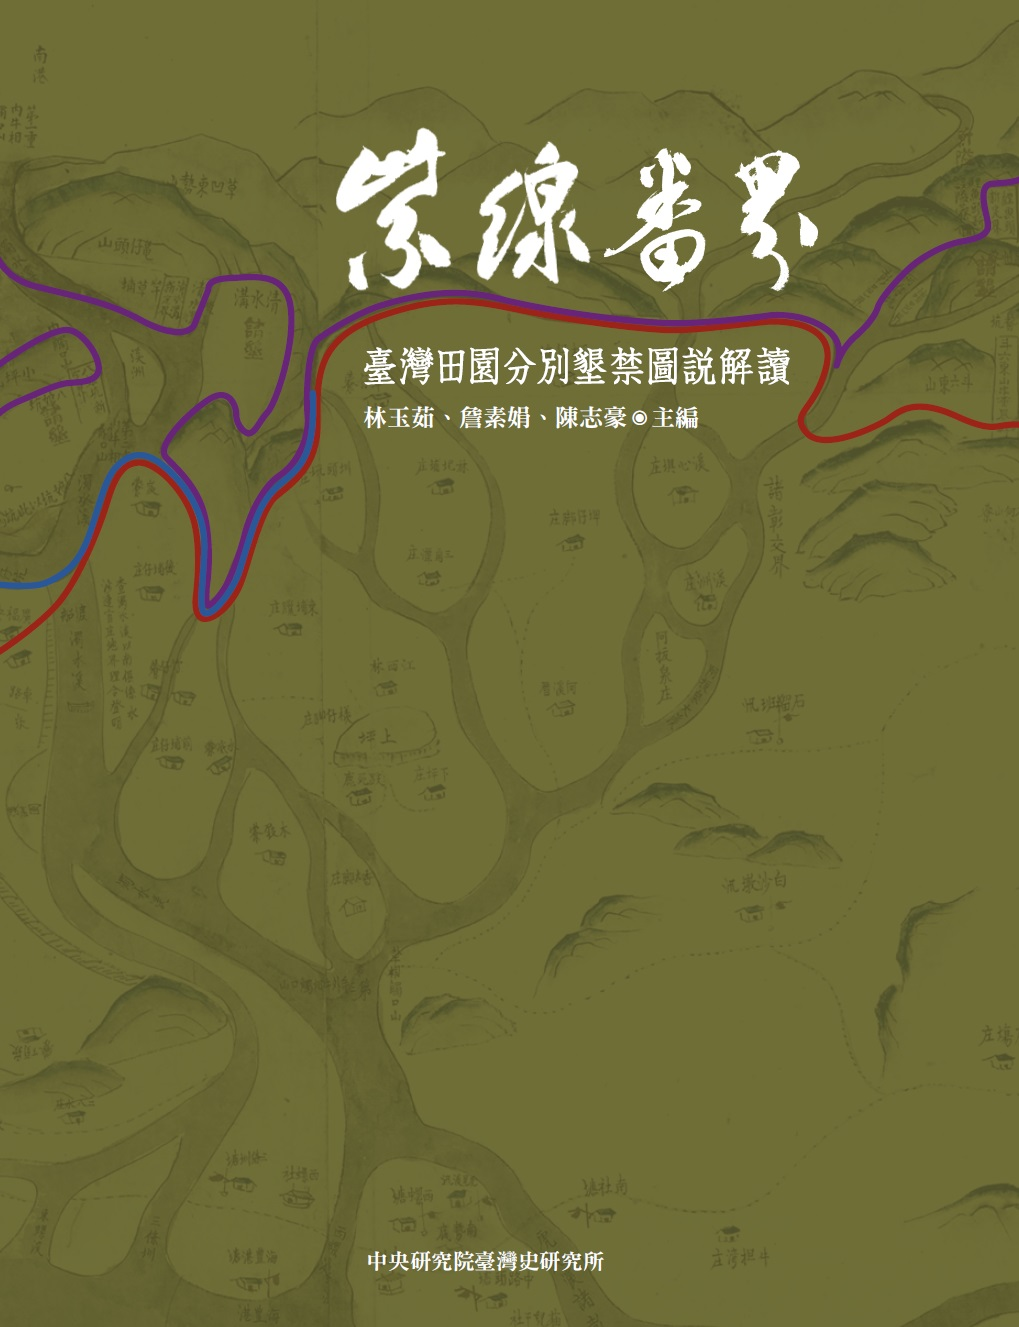 The Purple Aboriginal Boundary: Analyzing the Map and Description of Reclaimed and Prohibited Paddy and Dry Land in Taiwan